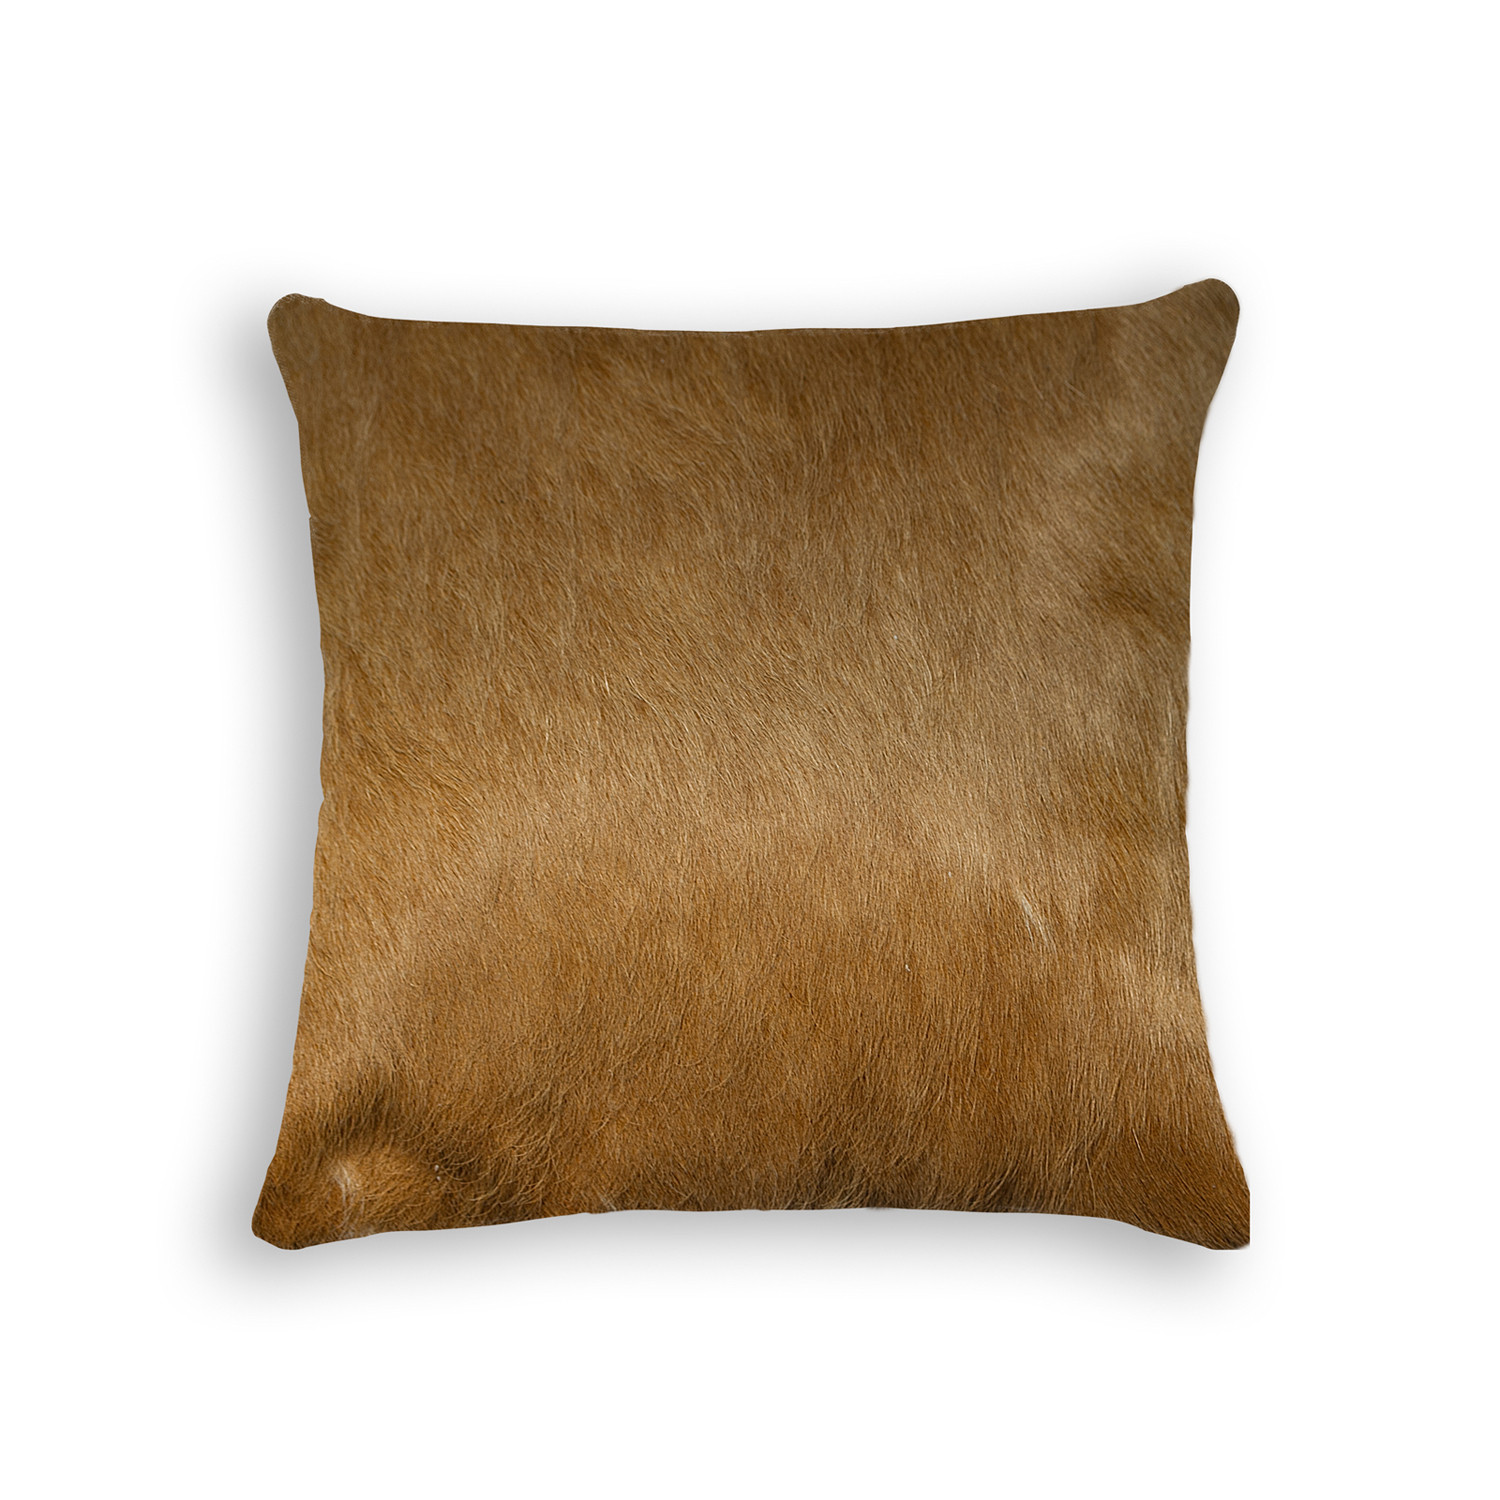 Torino Cowhide Pillow // Patterned // 18